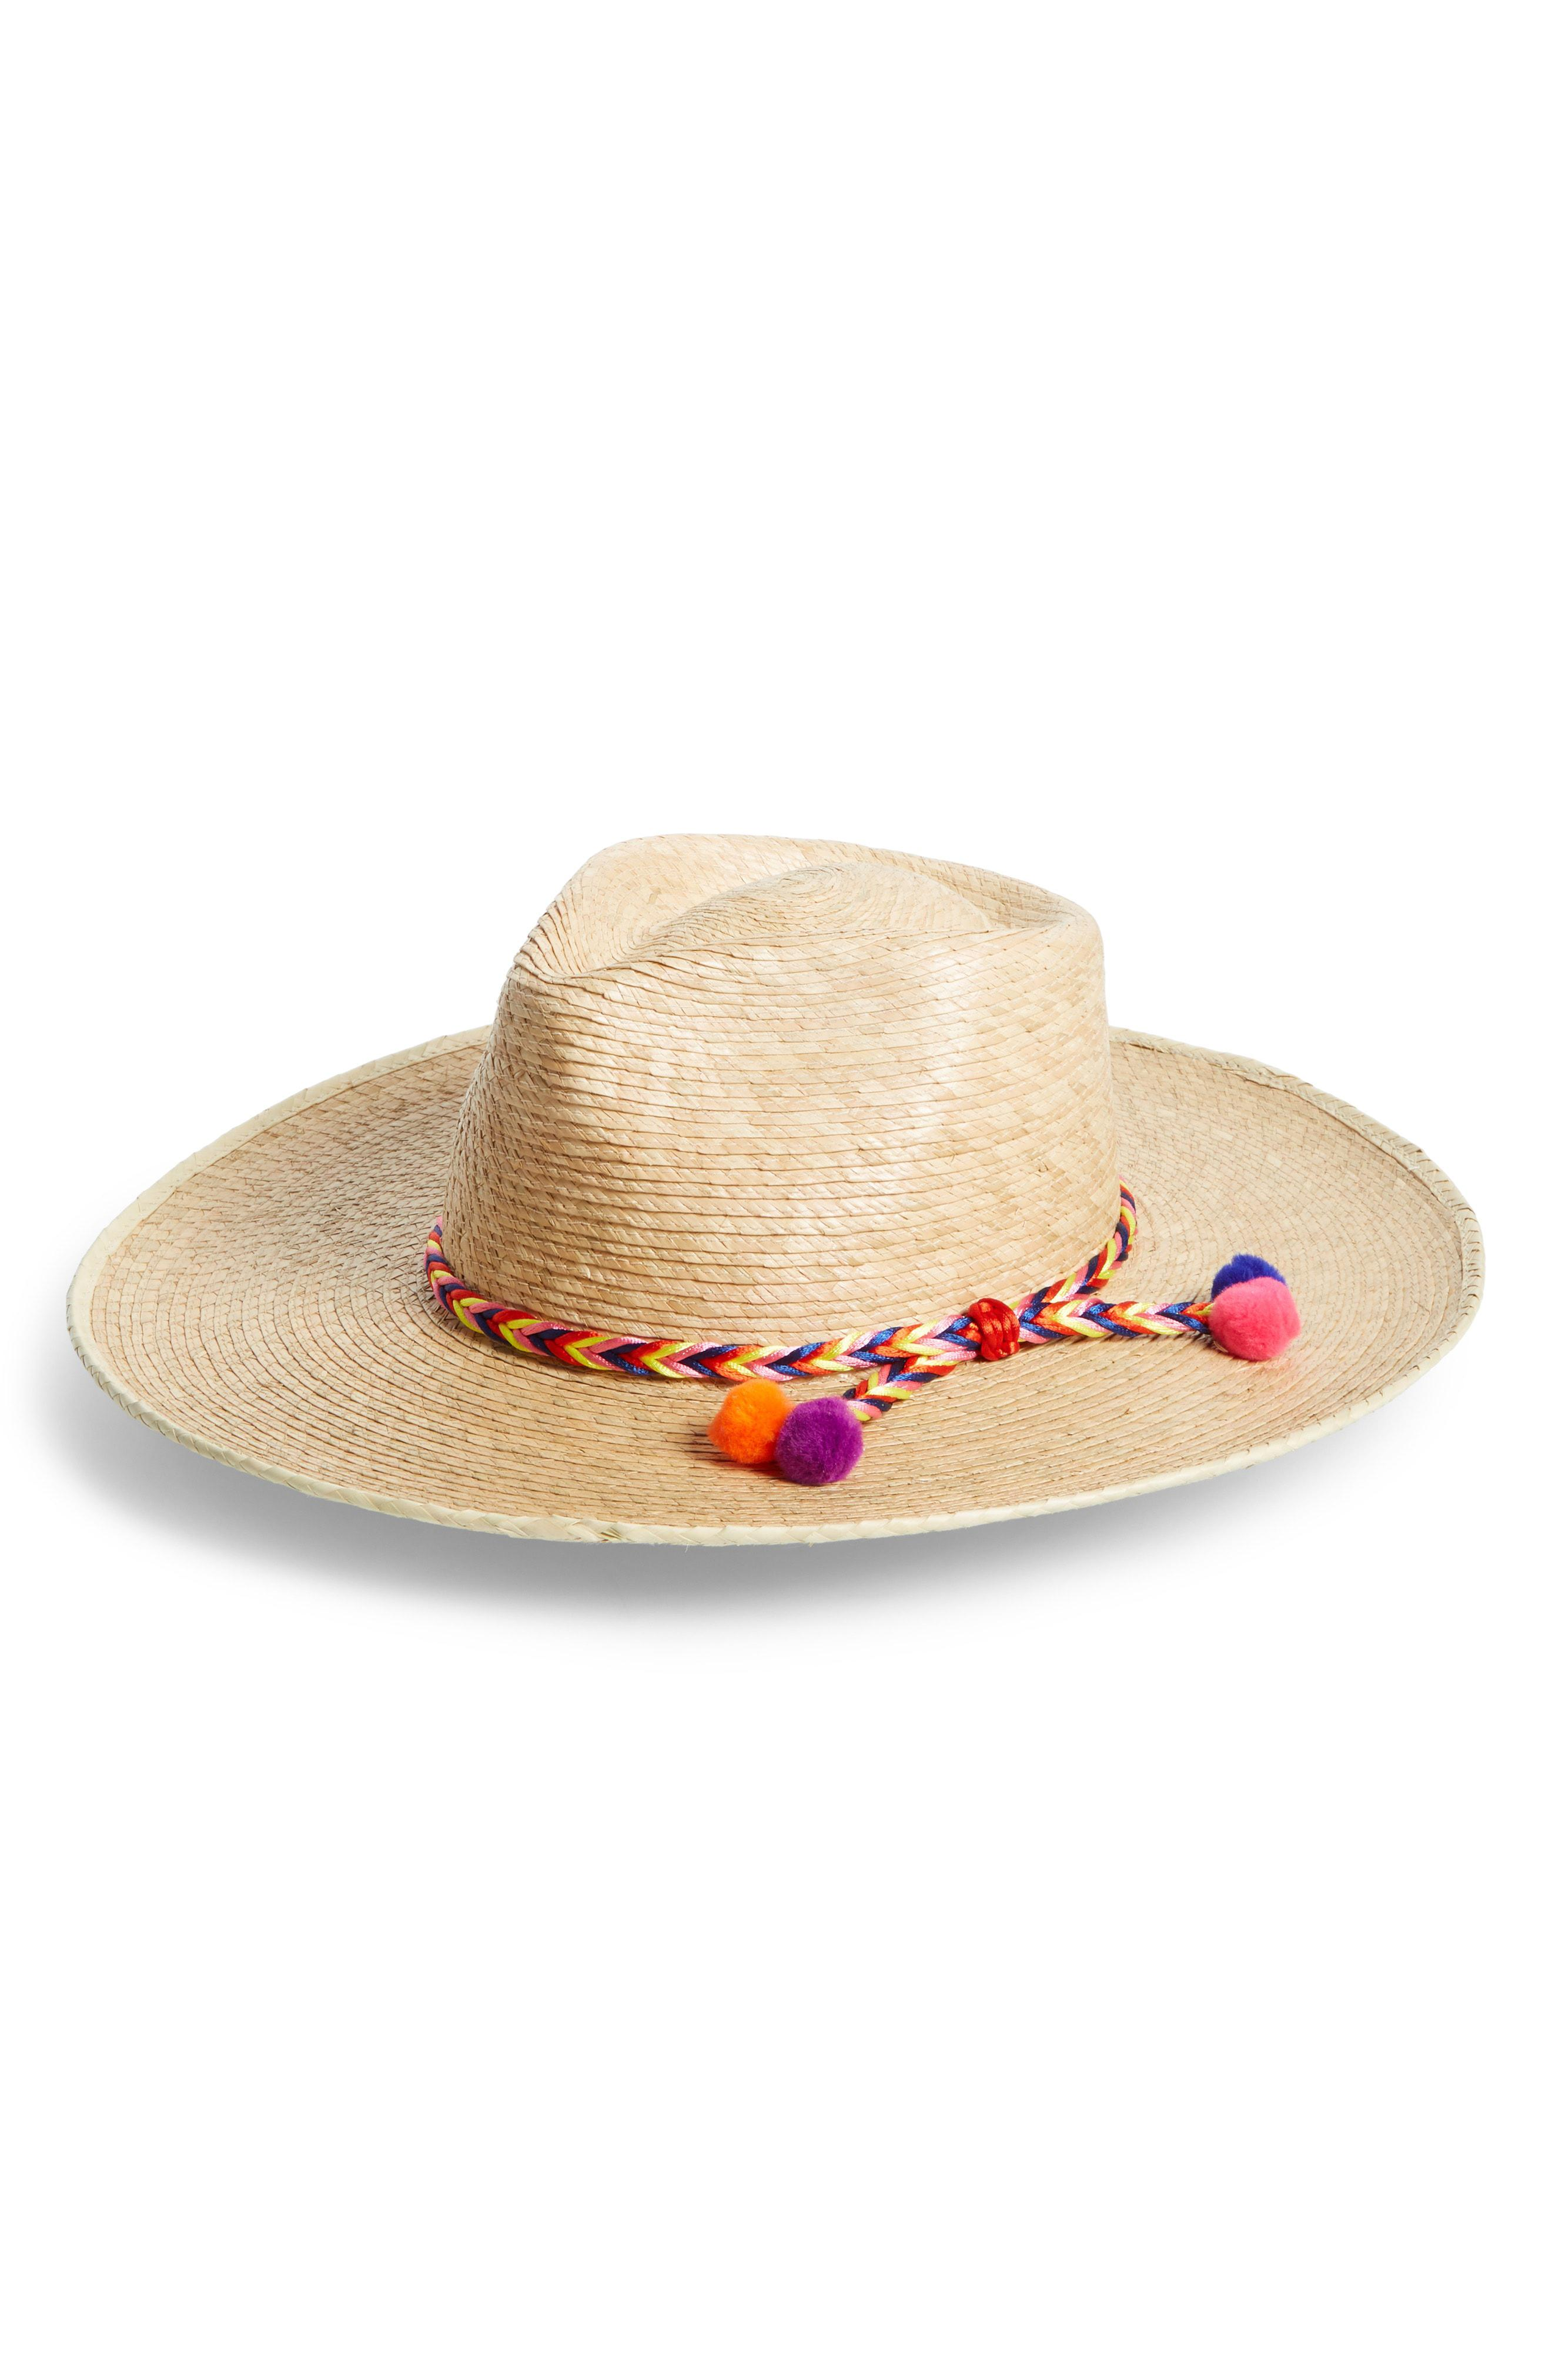 Lyst - Brixton Joanna Palm Hat in Natural 347b0e31bf8